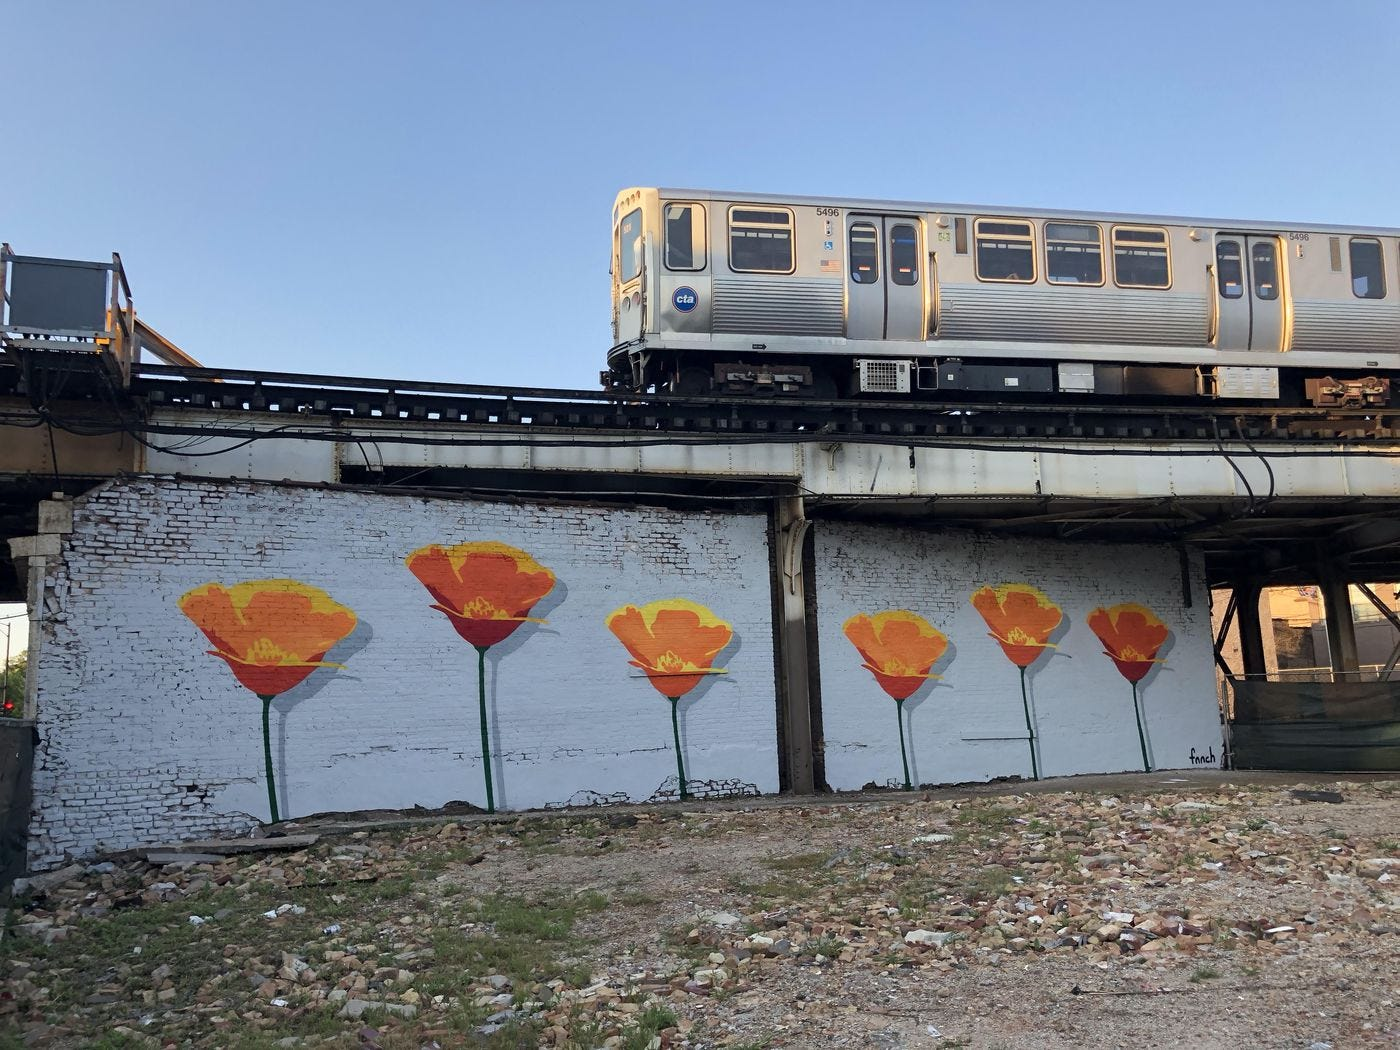 Chicago murals: Giant honey bear mural at West Town viadcut offers a nod to  Chicago culture - Chicago Sun-Times